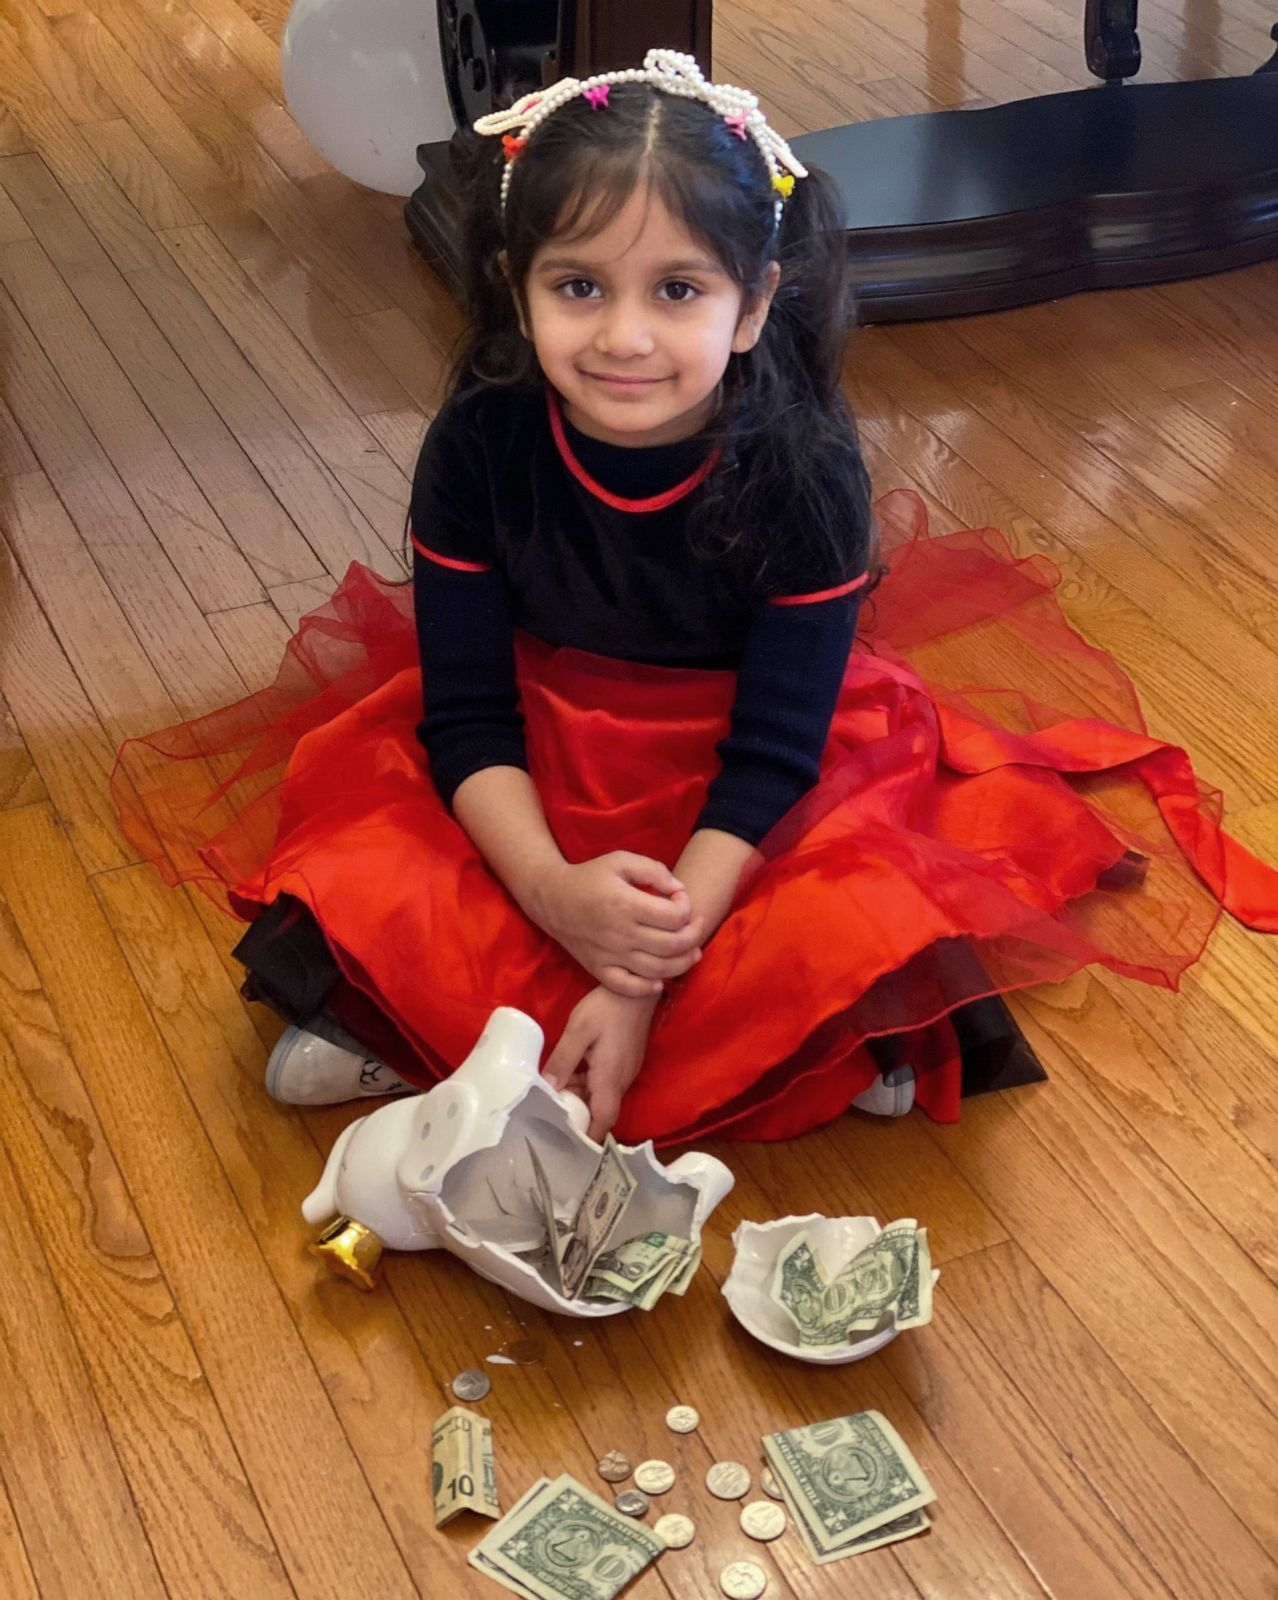 Aryana Chopra using Piggy Bank money for nursing home gifts